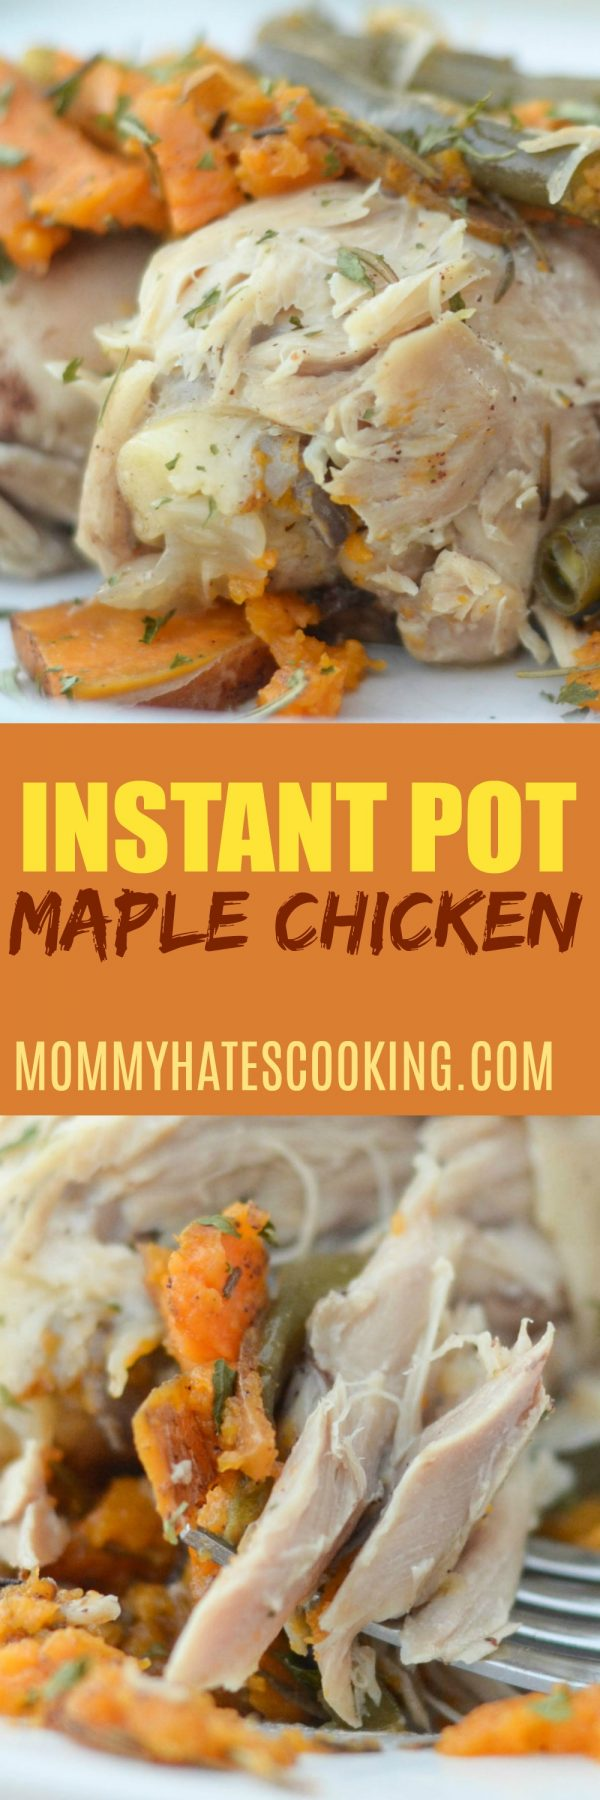 INSTANT POT MAPLE CHICKEN